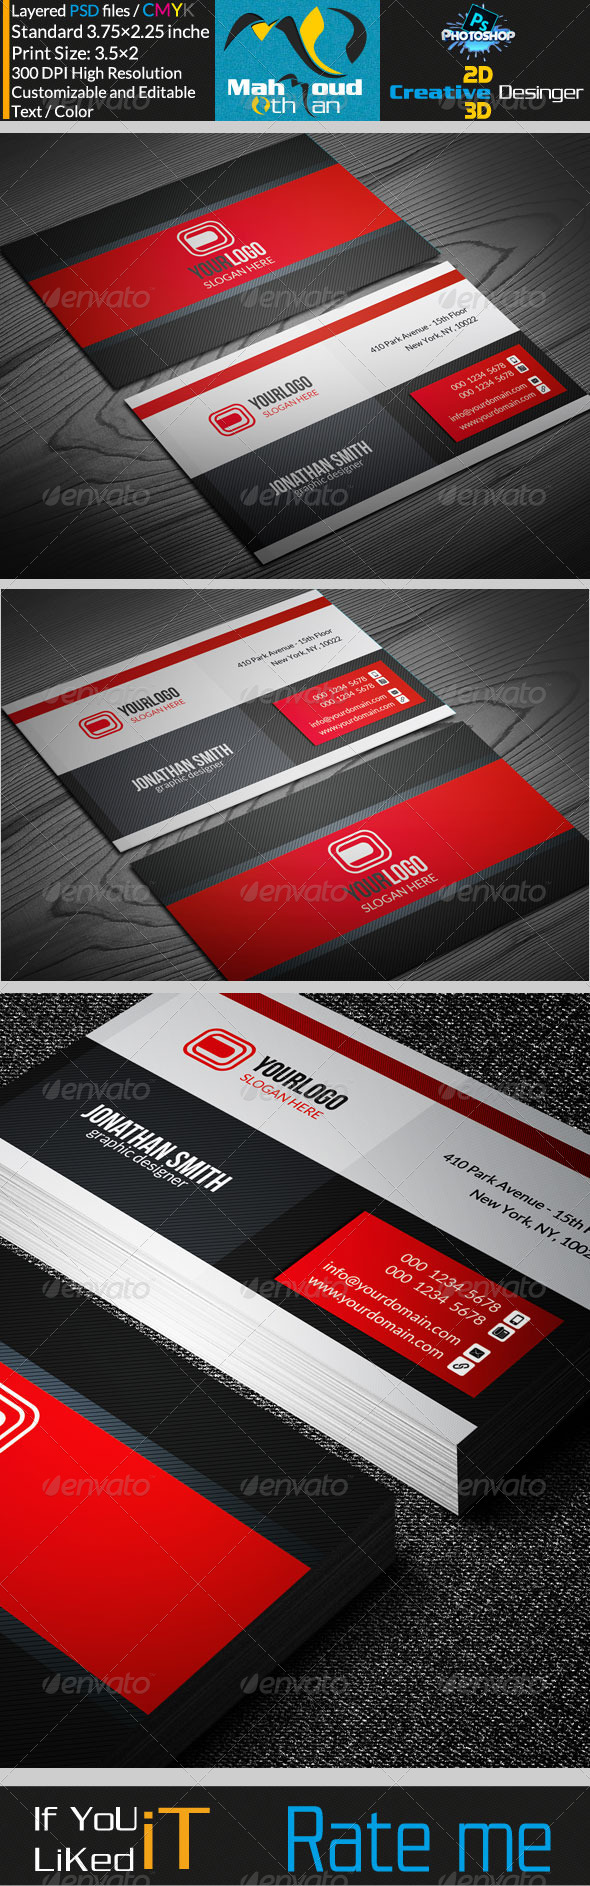 Corporate Business Card V17 - Corporate Business Cards